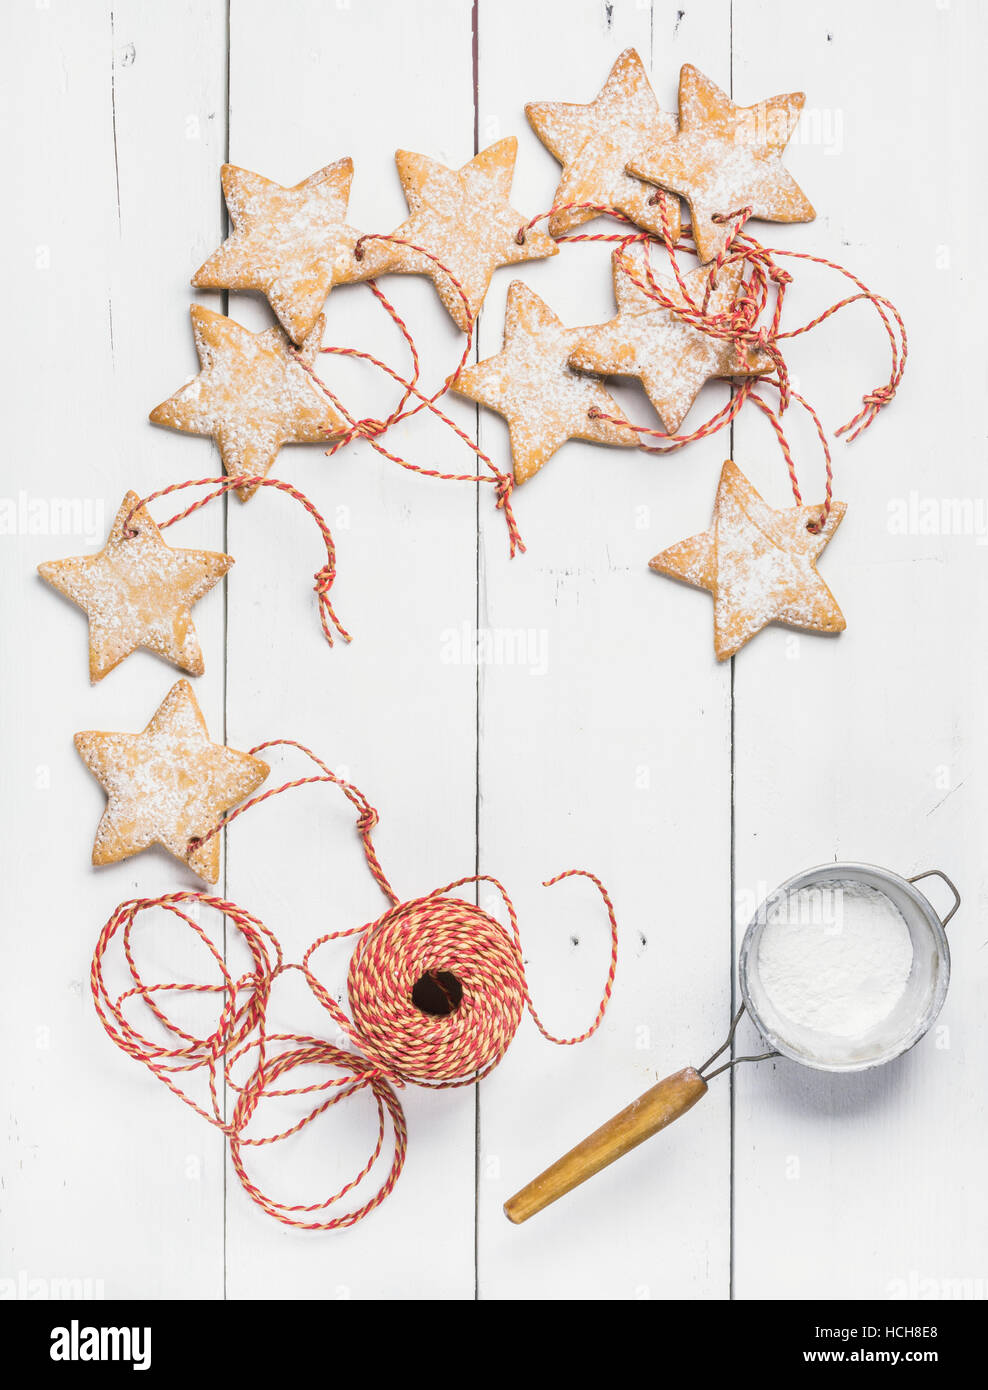 Christmas homemade gingerbread star shaped cookies with sugar powder in sieve and red decoration rope over white - Stock Image